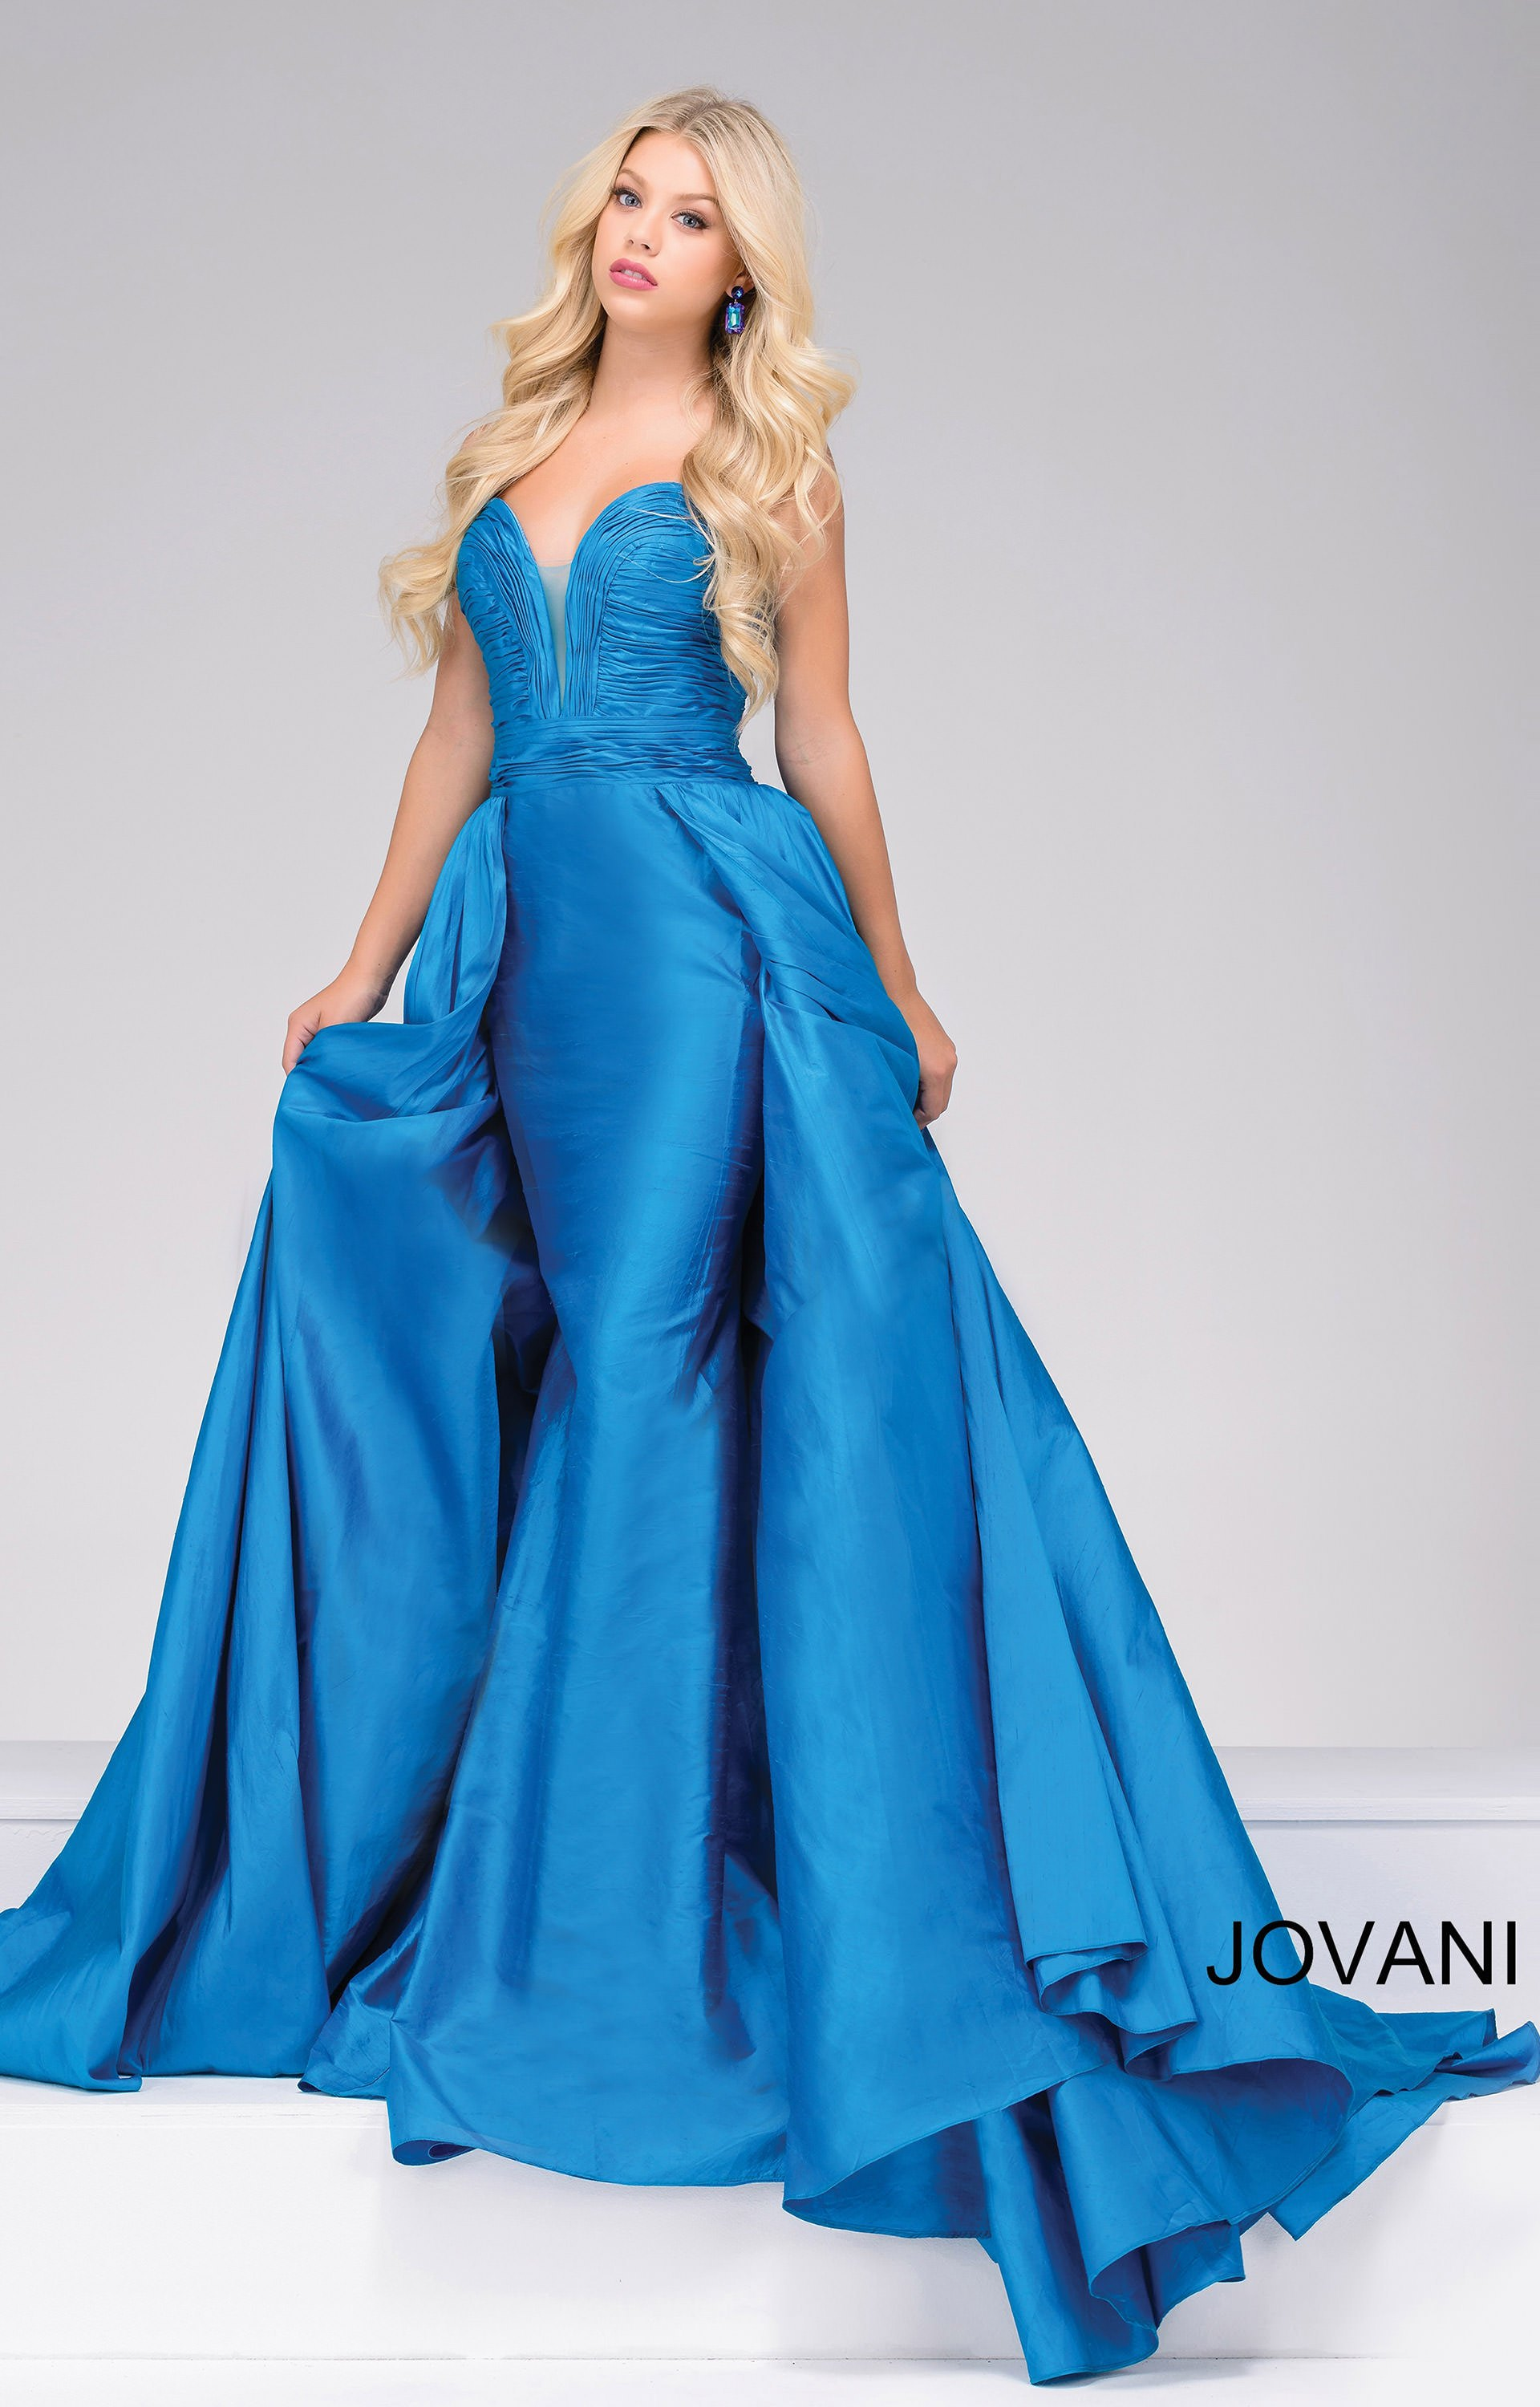 Jovani 36163 Sleeveless Ballgown With Cape Train Prom Dress